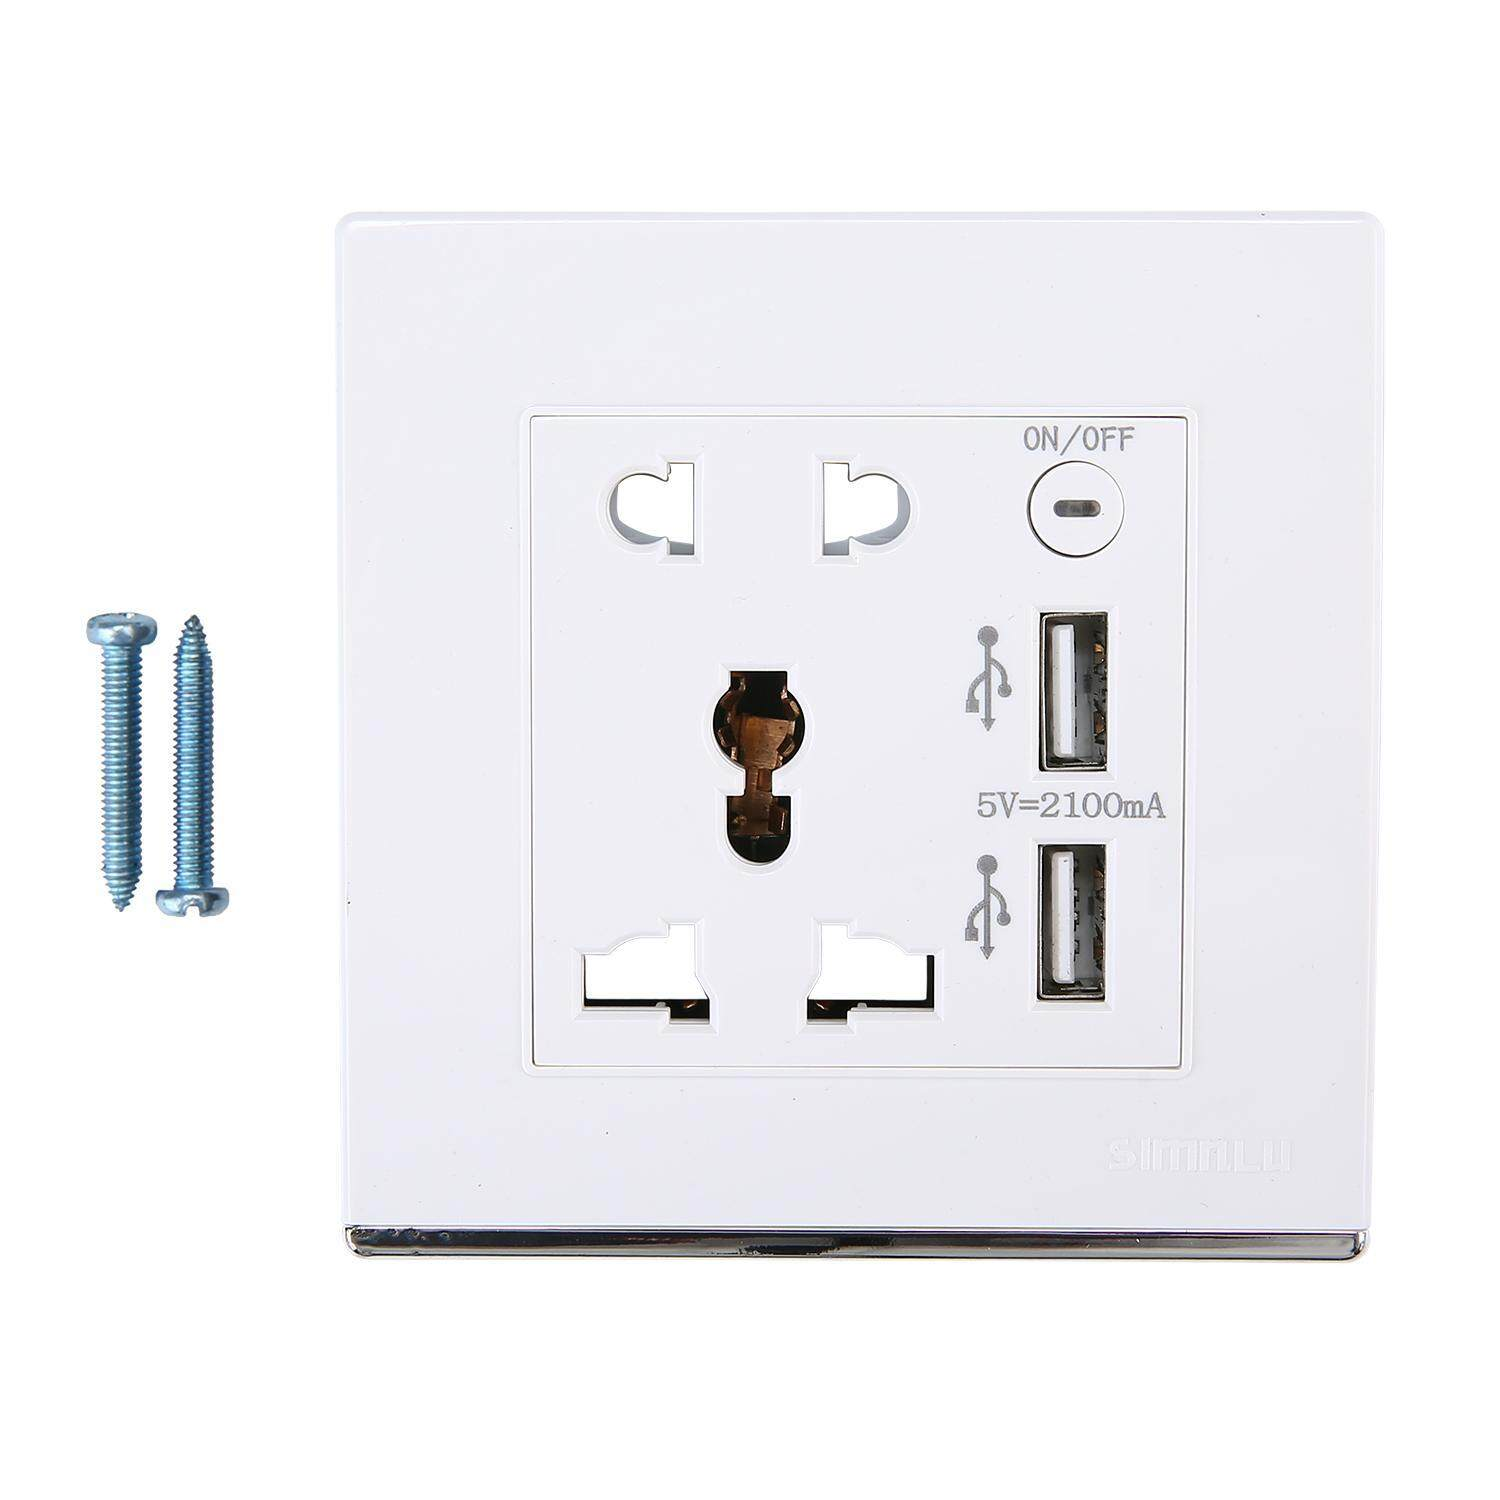 SOBUY Dual USB Port Wall Socket Charging Socket Adapter Power Outlet Multifunction Panel For IPhone 7 IPhone 6S Plus Samsung Galaxy All Smartphones And Device White